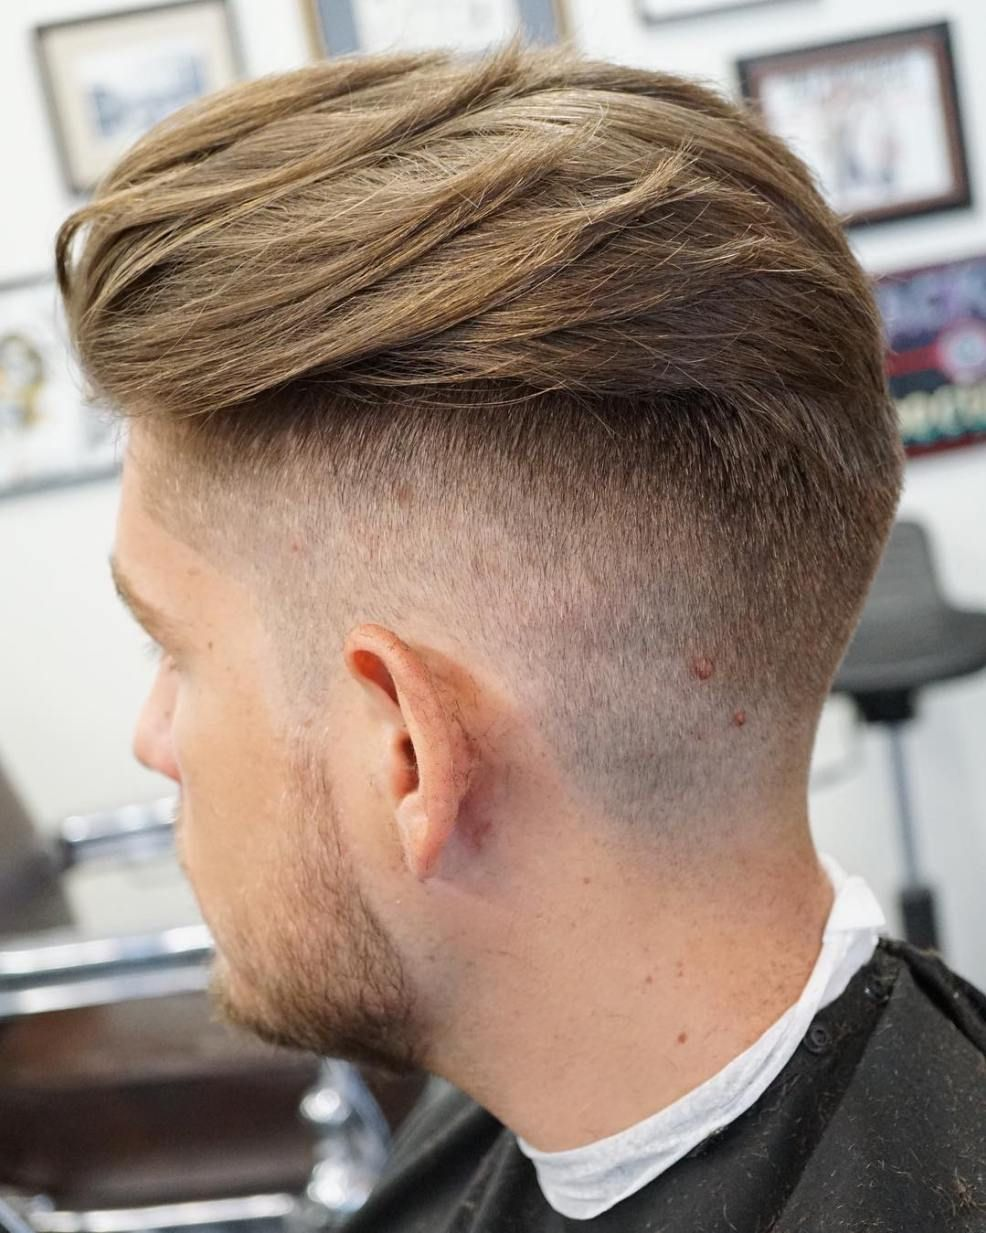 UltraCool High Fade Haircuts for Men  Mens hairstyles